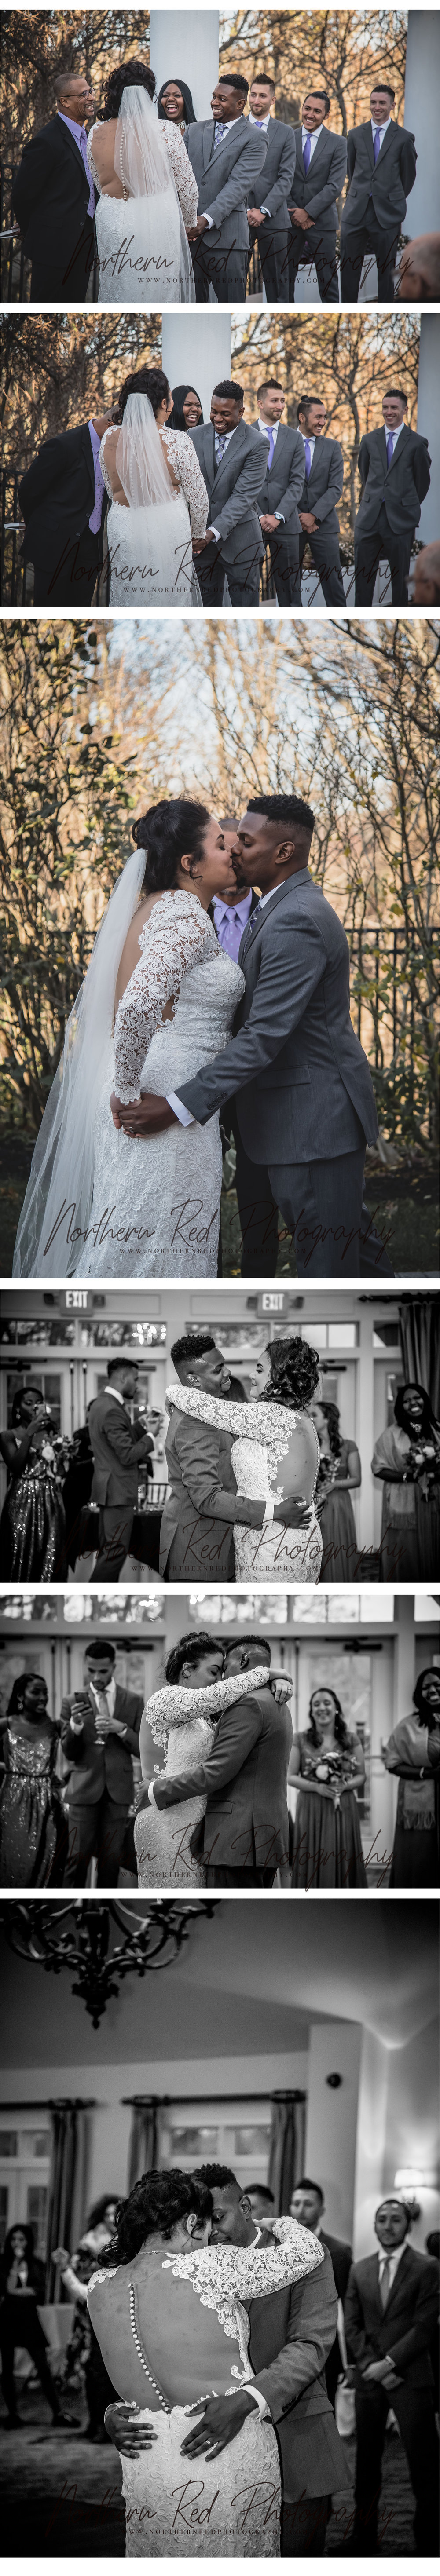 NorthernRedPhotography_SC Wedding Photographer